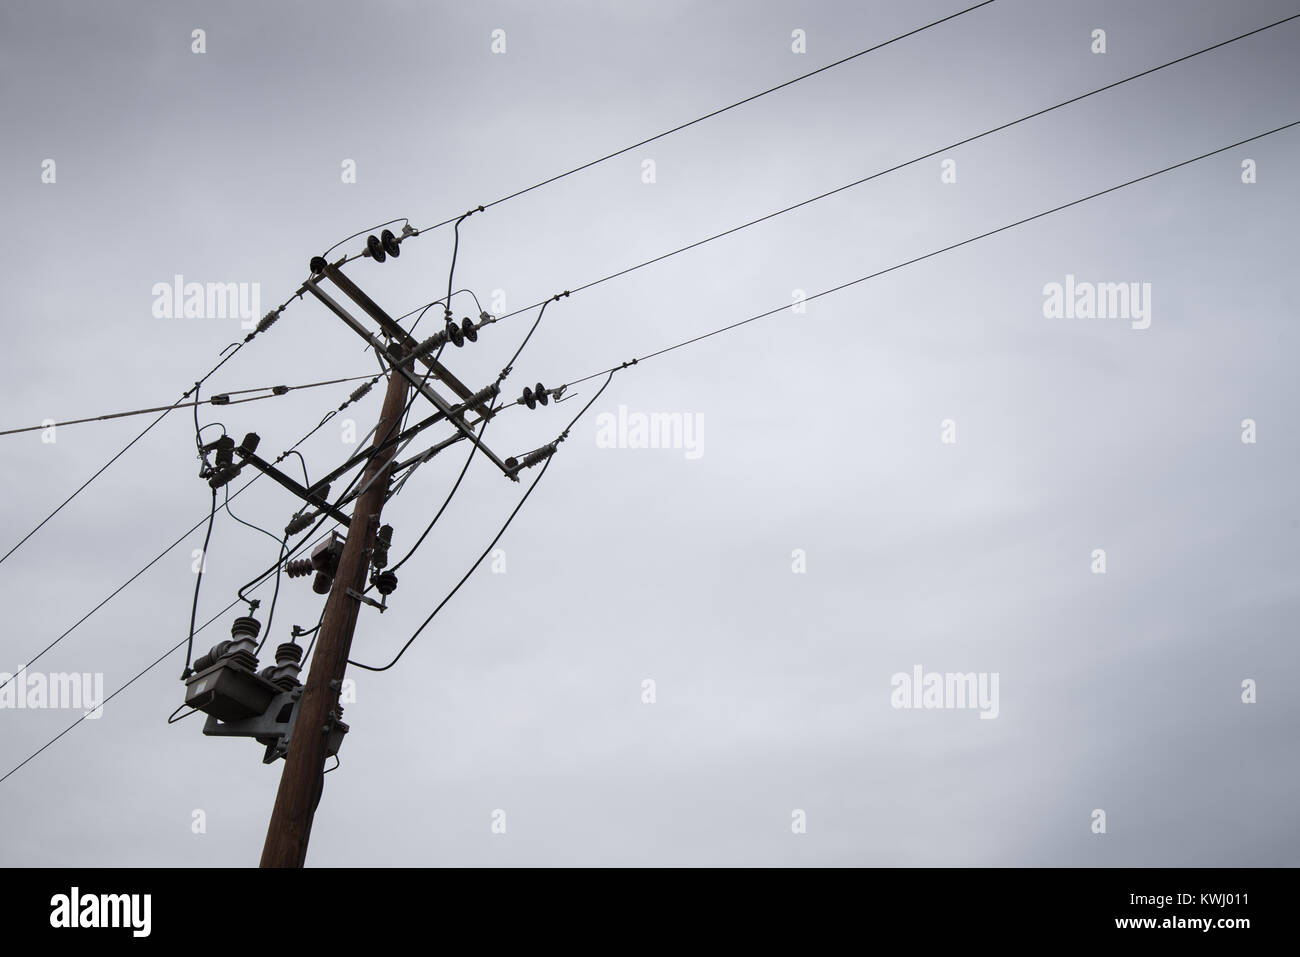 Electricity power pylon with electric wires transferring electrical ...